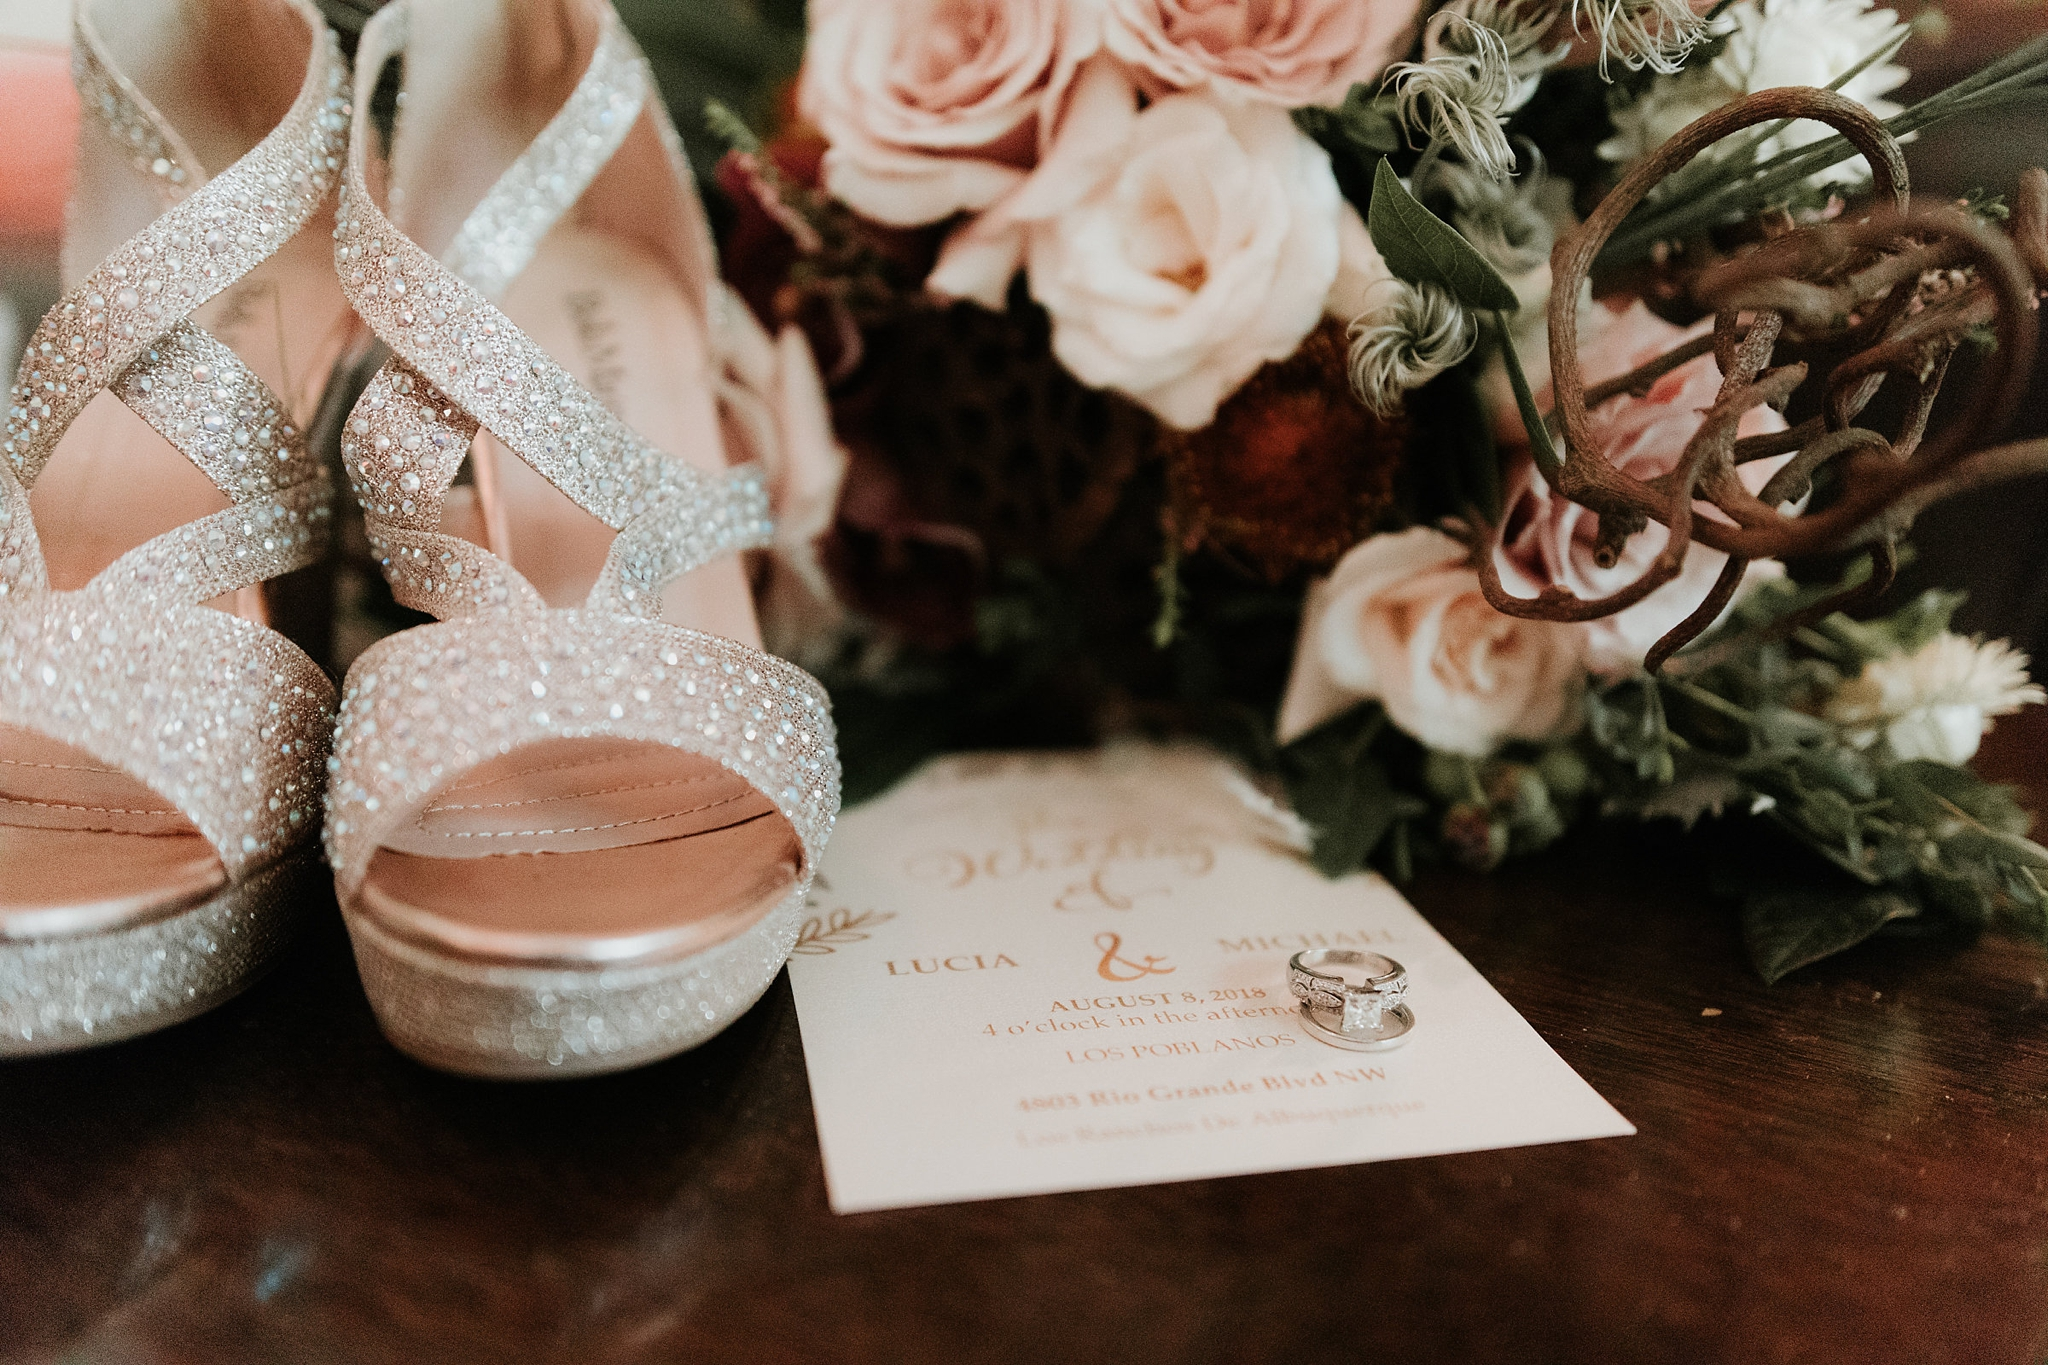 Alicia+lucia+photography+-+albuquerque+wedding+photographer+-+santa+fe+wedding+photography+-+new+mexico+wedding+photographer+-+new+mexico+wedding+-+new+mexico+wedding+-+colorado+wedding+-+bridal+shoes+-+bridal+inspo_0045.jpg